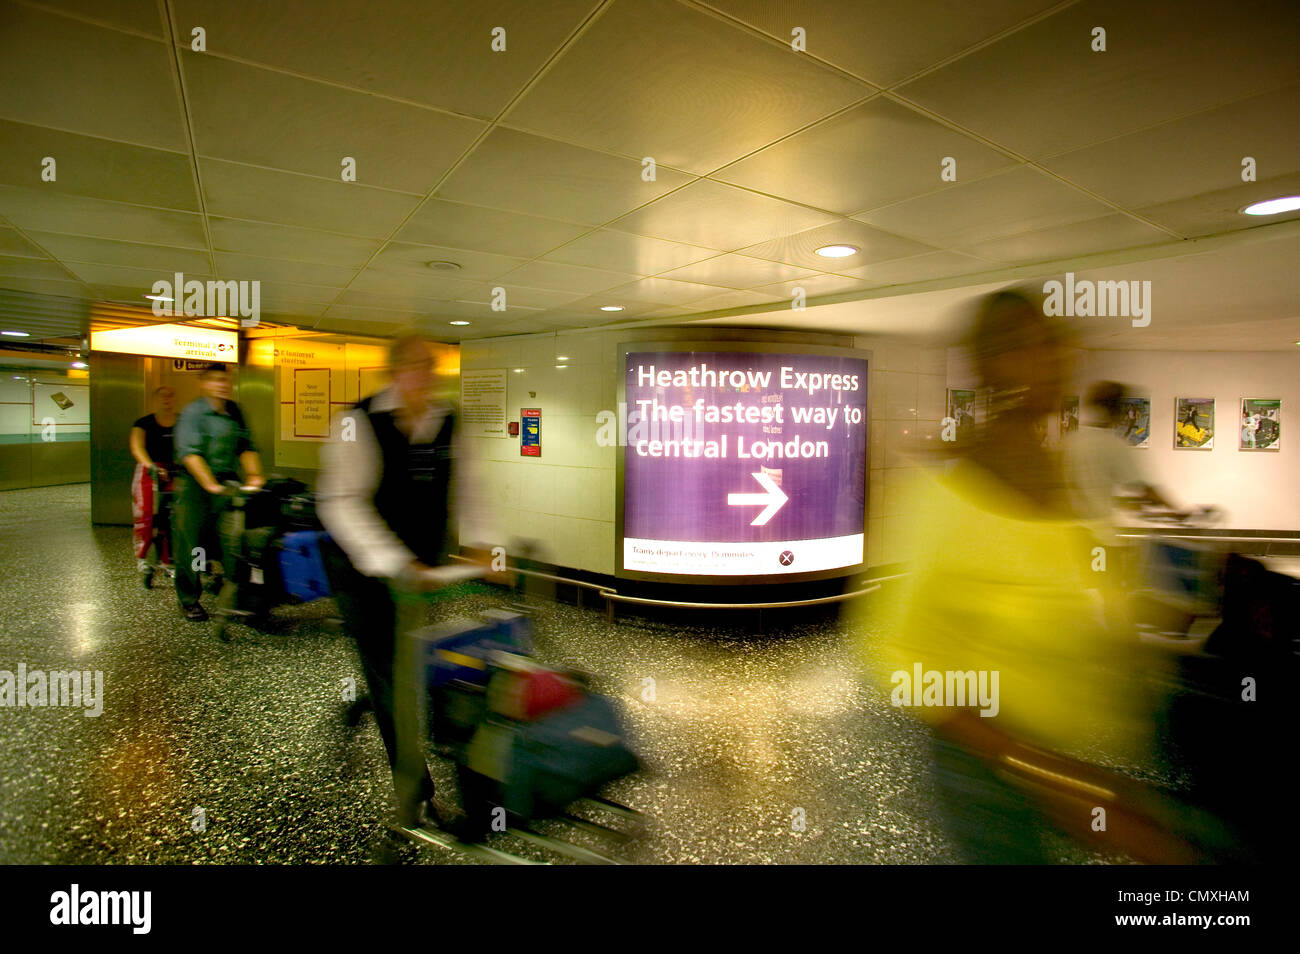 Passengers arriving at Heathrow airport in the arrival area - Stock Image